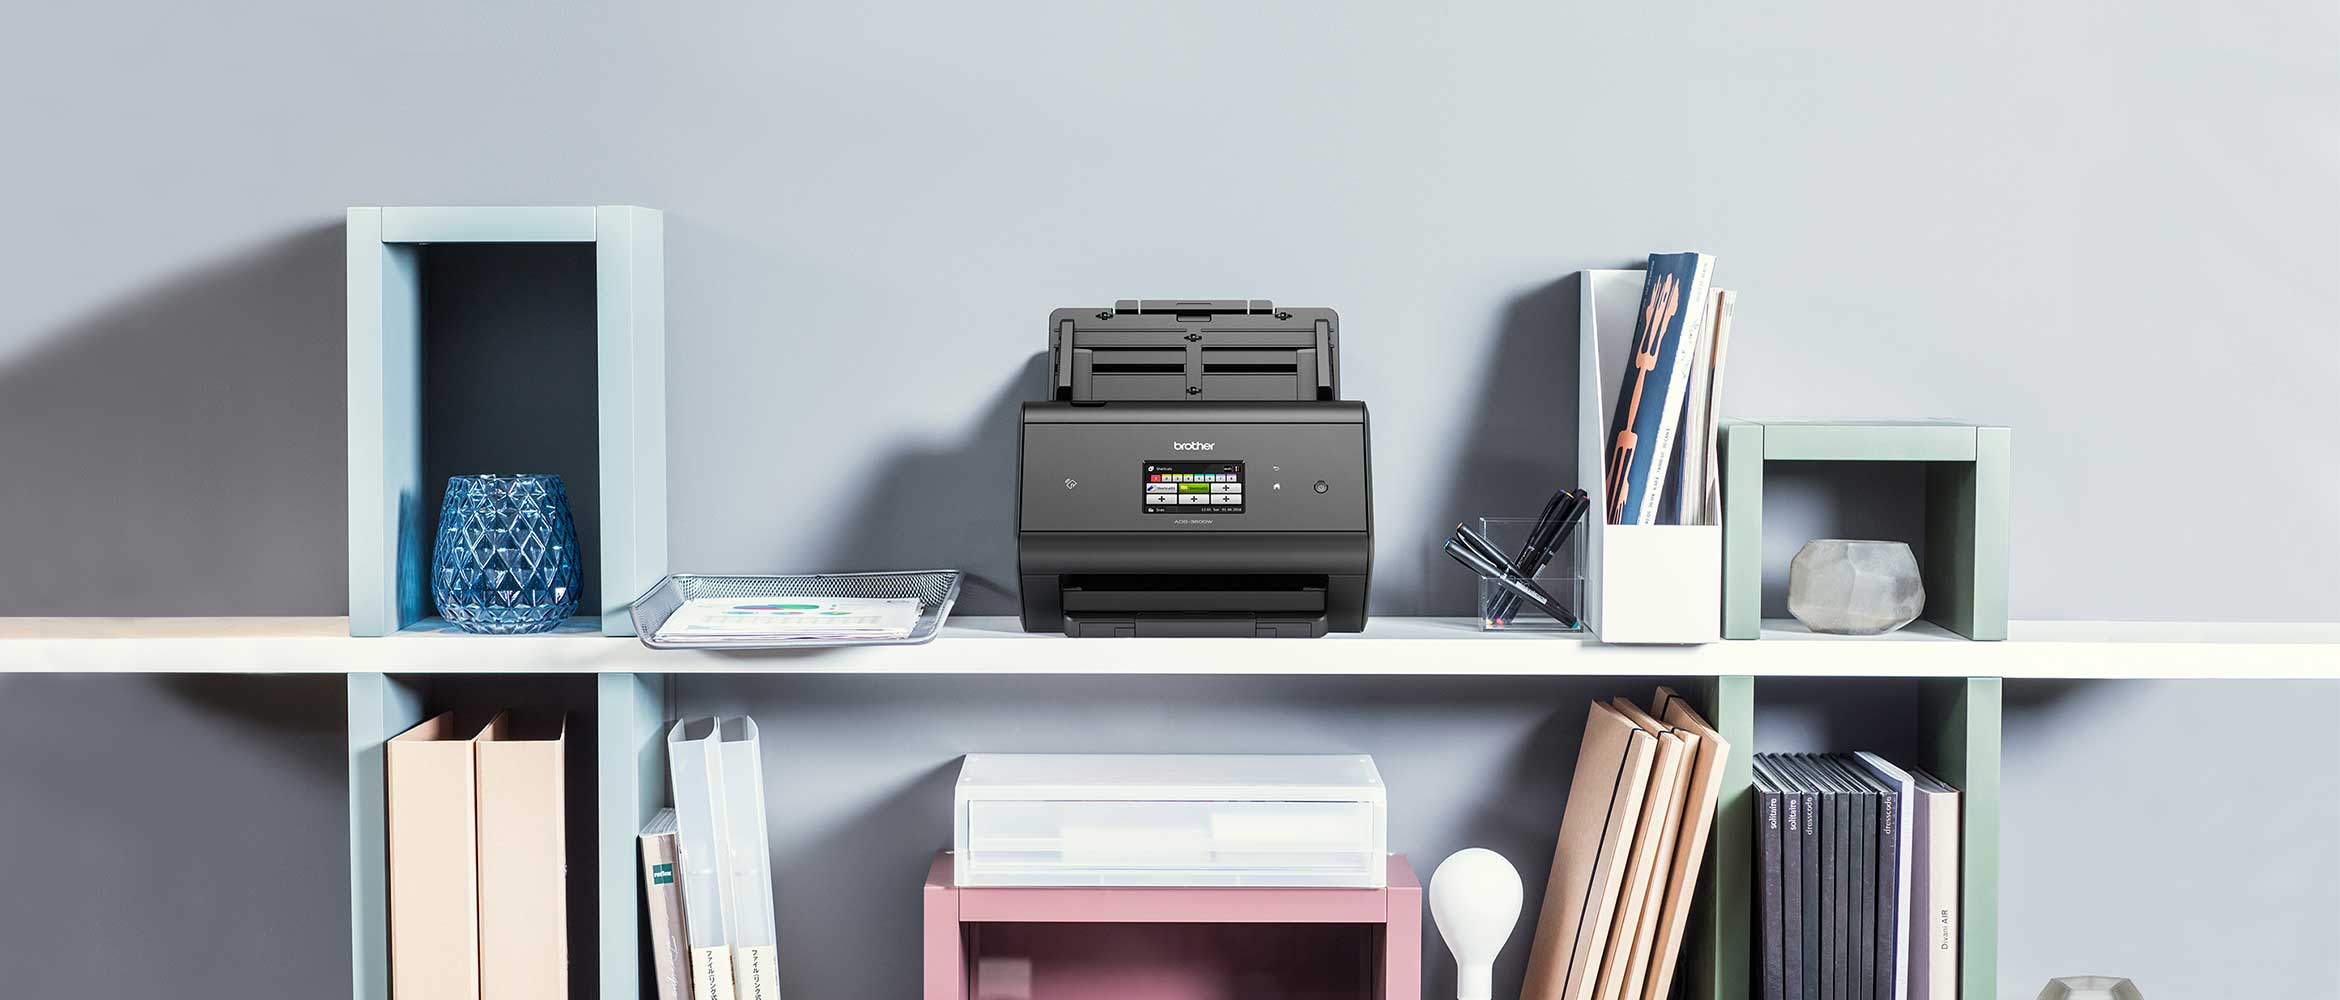 Black and white Brother desktop document scanner